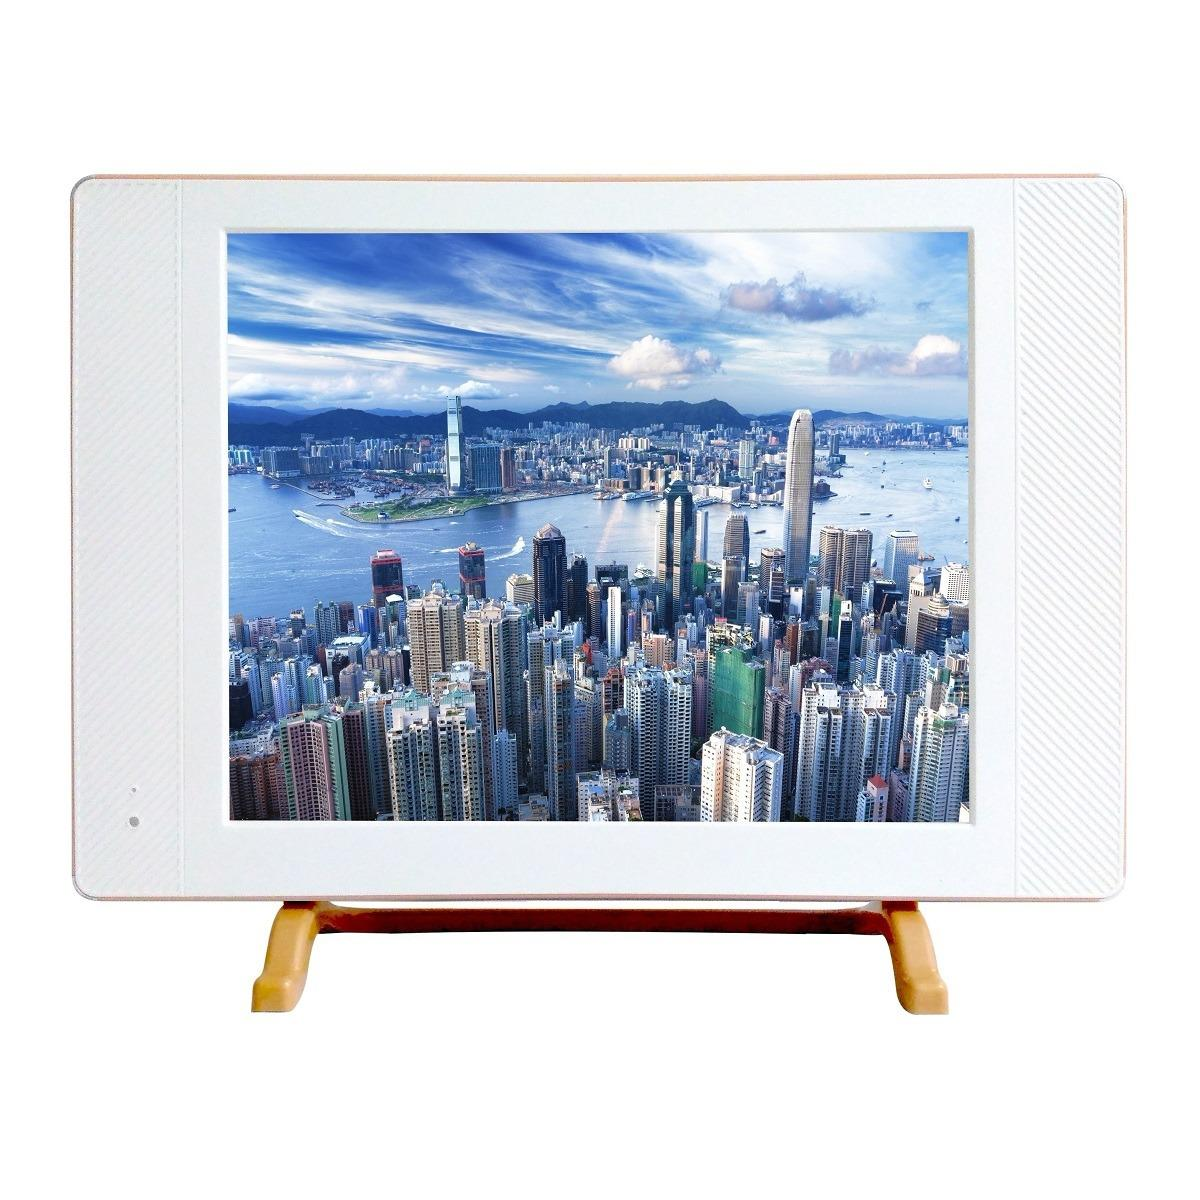 Promo LED TV Monitor CMM 19 inch Slim VGA AV HDMI USB Advertising Movie Murah